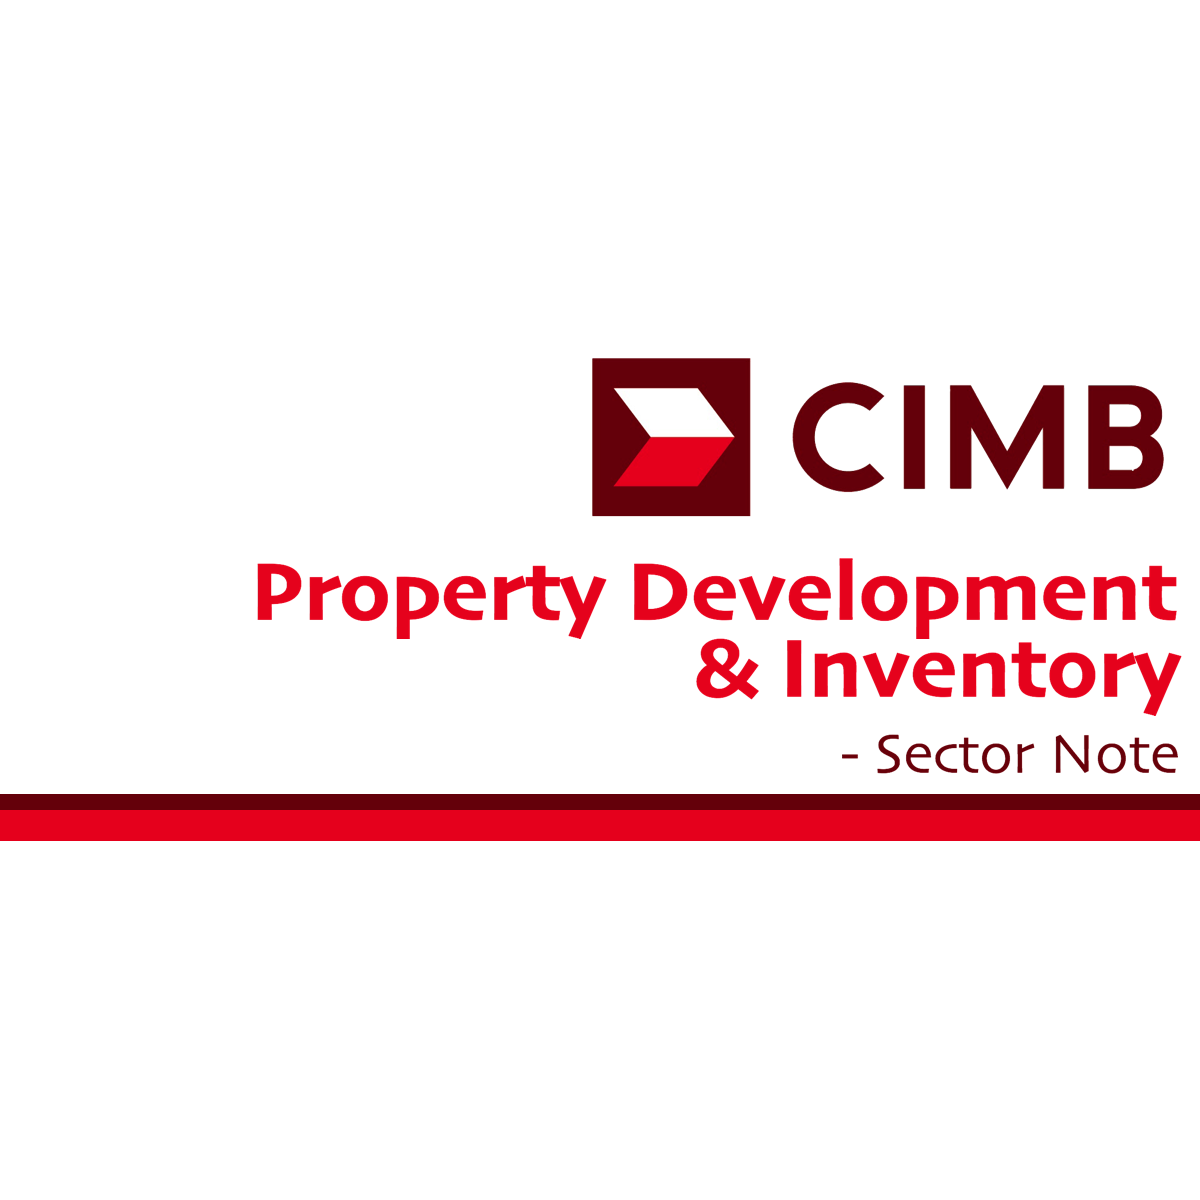 Property Development & Inventory - CGS-CIMB Research 2018-07-05: All Eyes On Take-up Rates